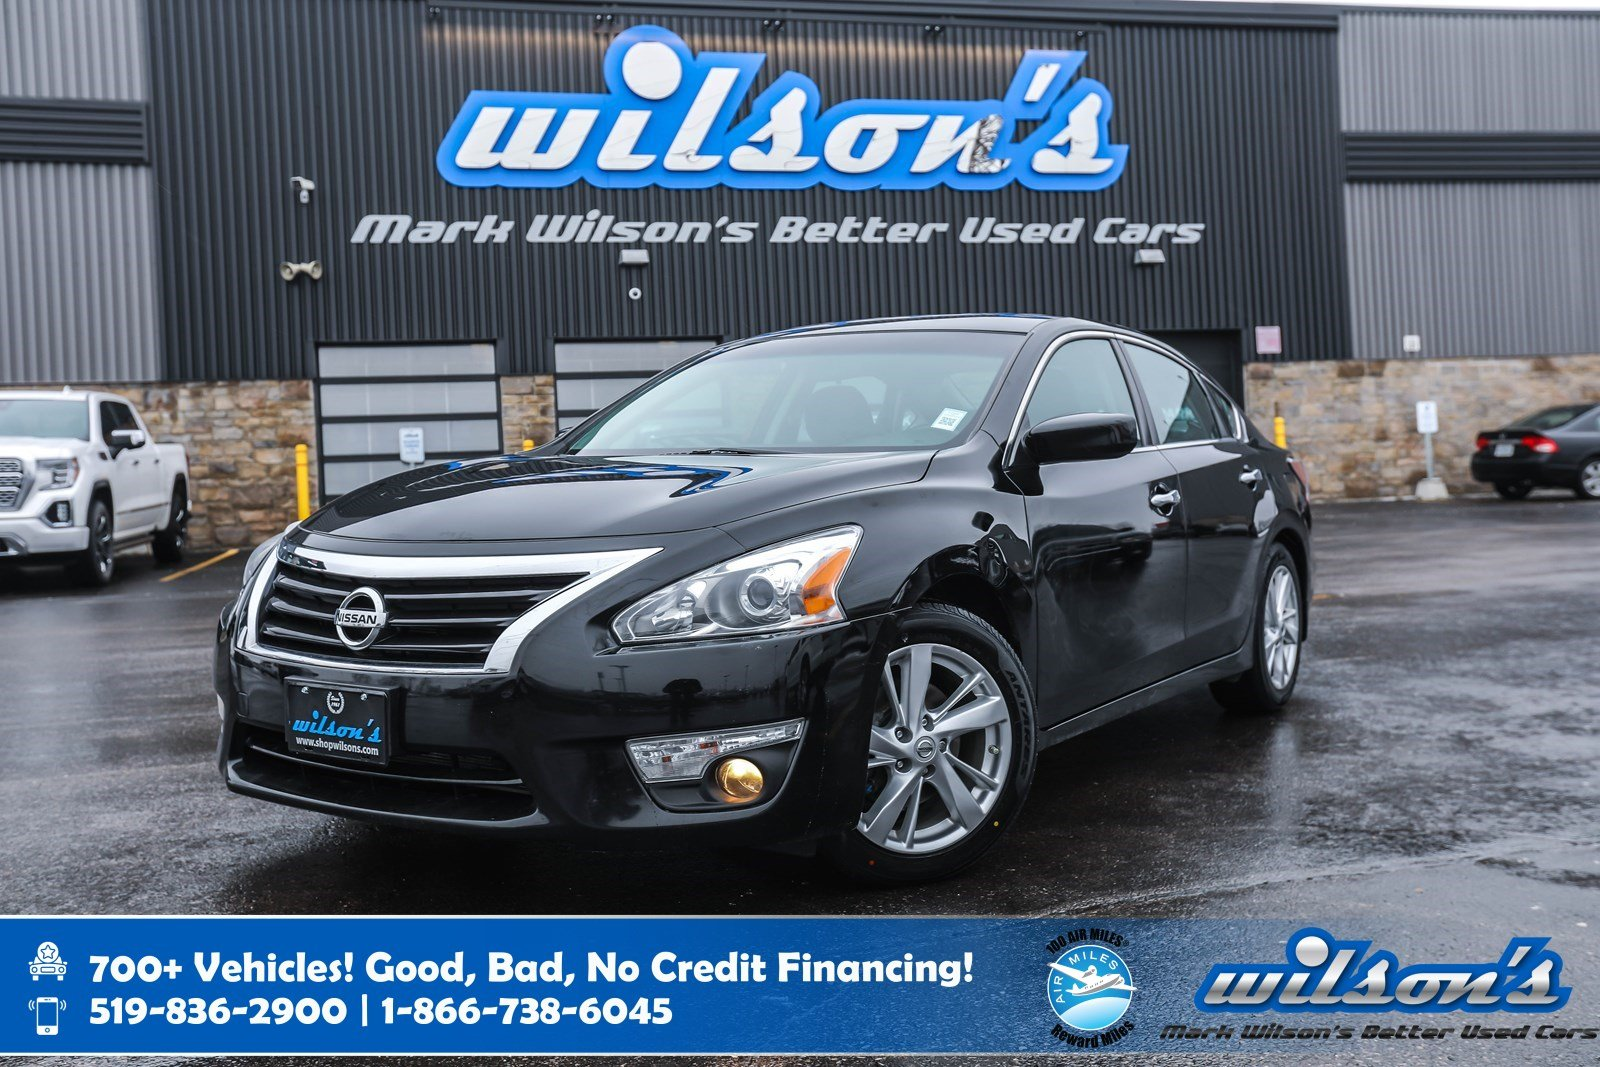 Certified Pre-Owned 2015 Nissan Altima 2.5 SV, Sunroof, Power Seat, New Tires, Heated Seats, Bluetooth, Rear Camera, Remote Start and more!